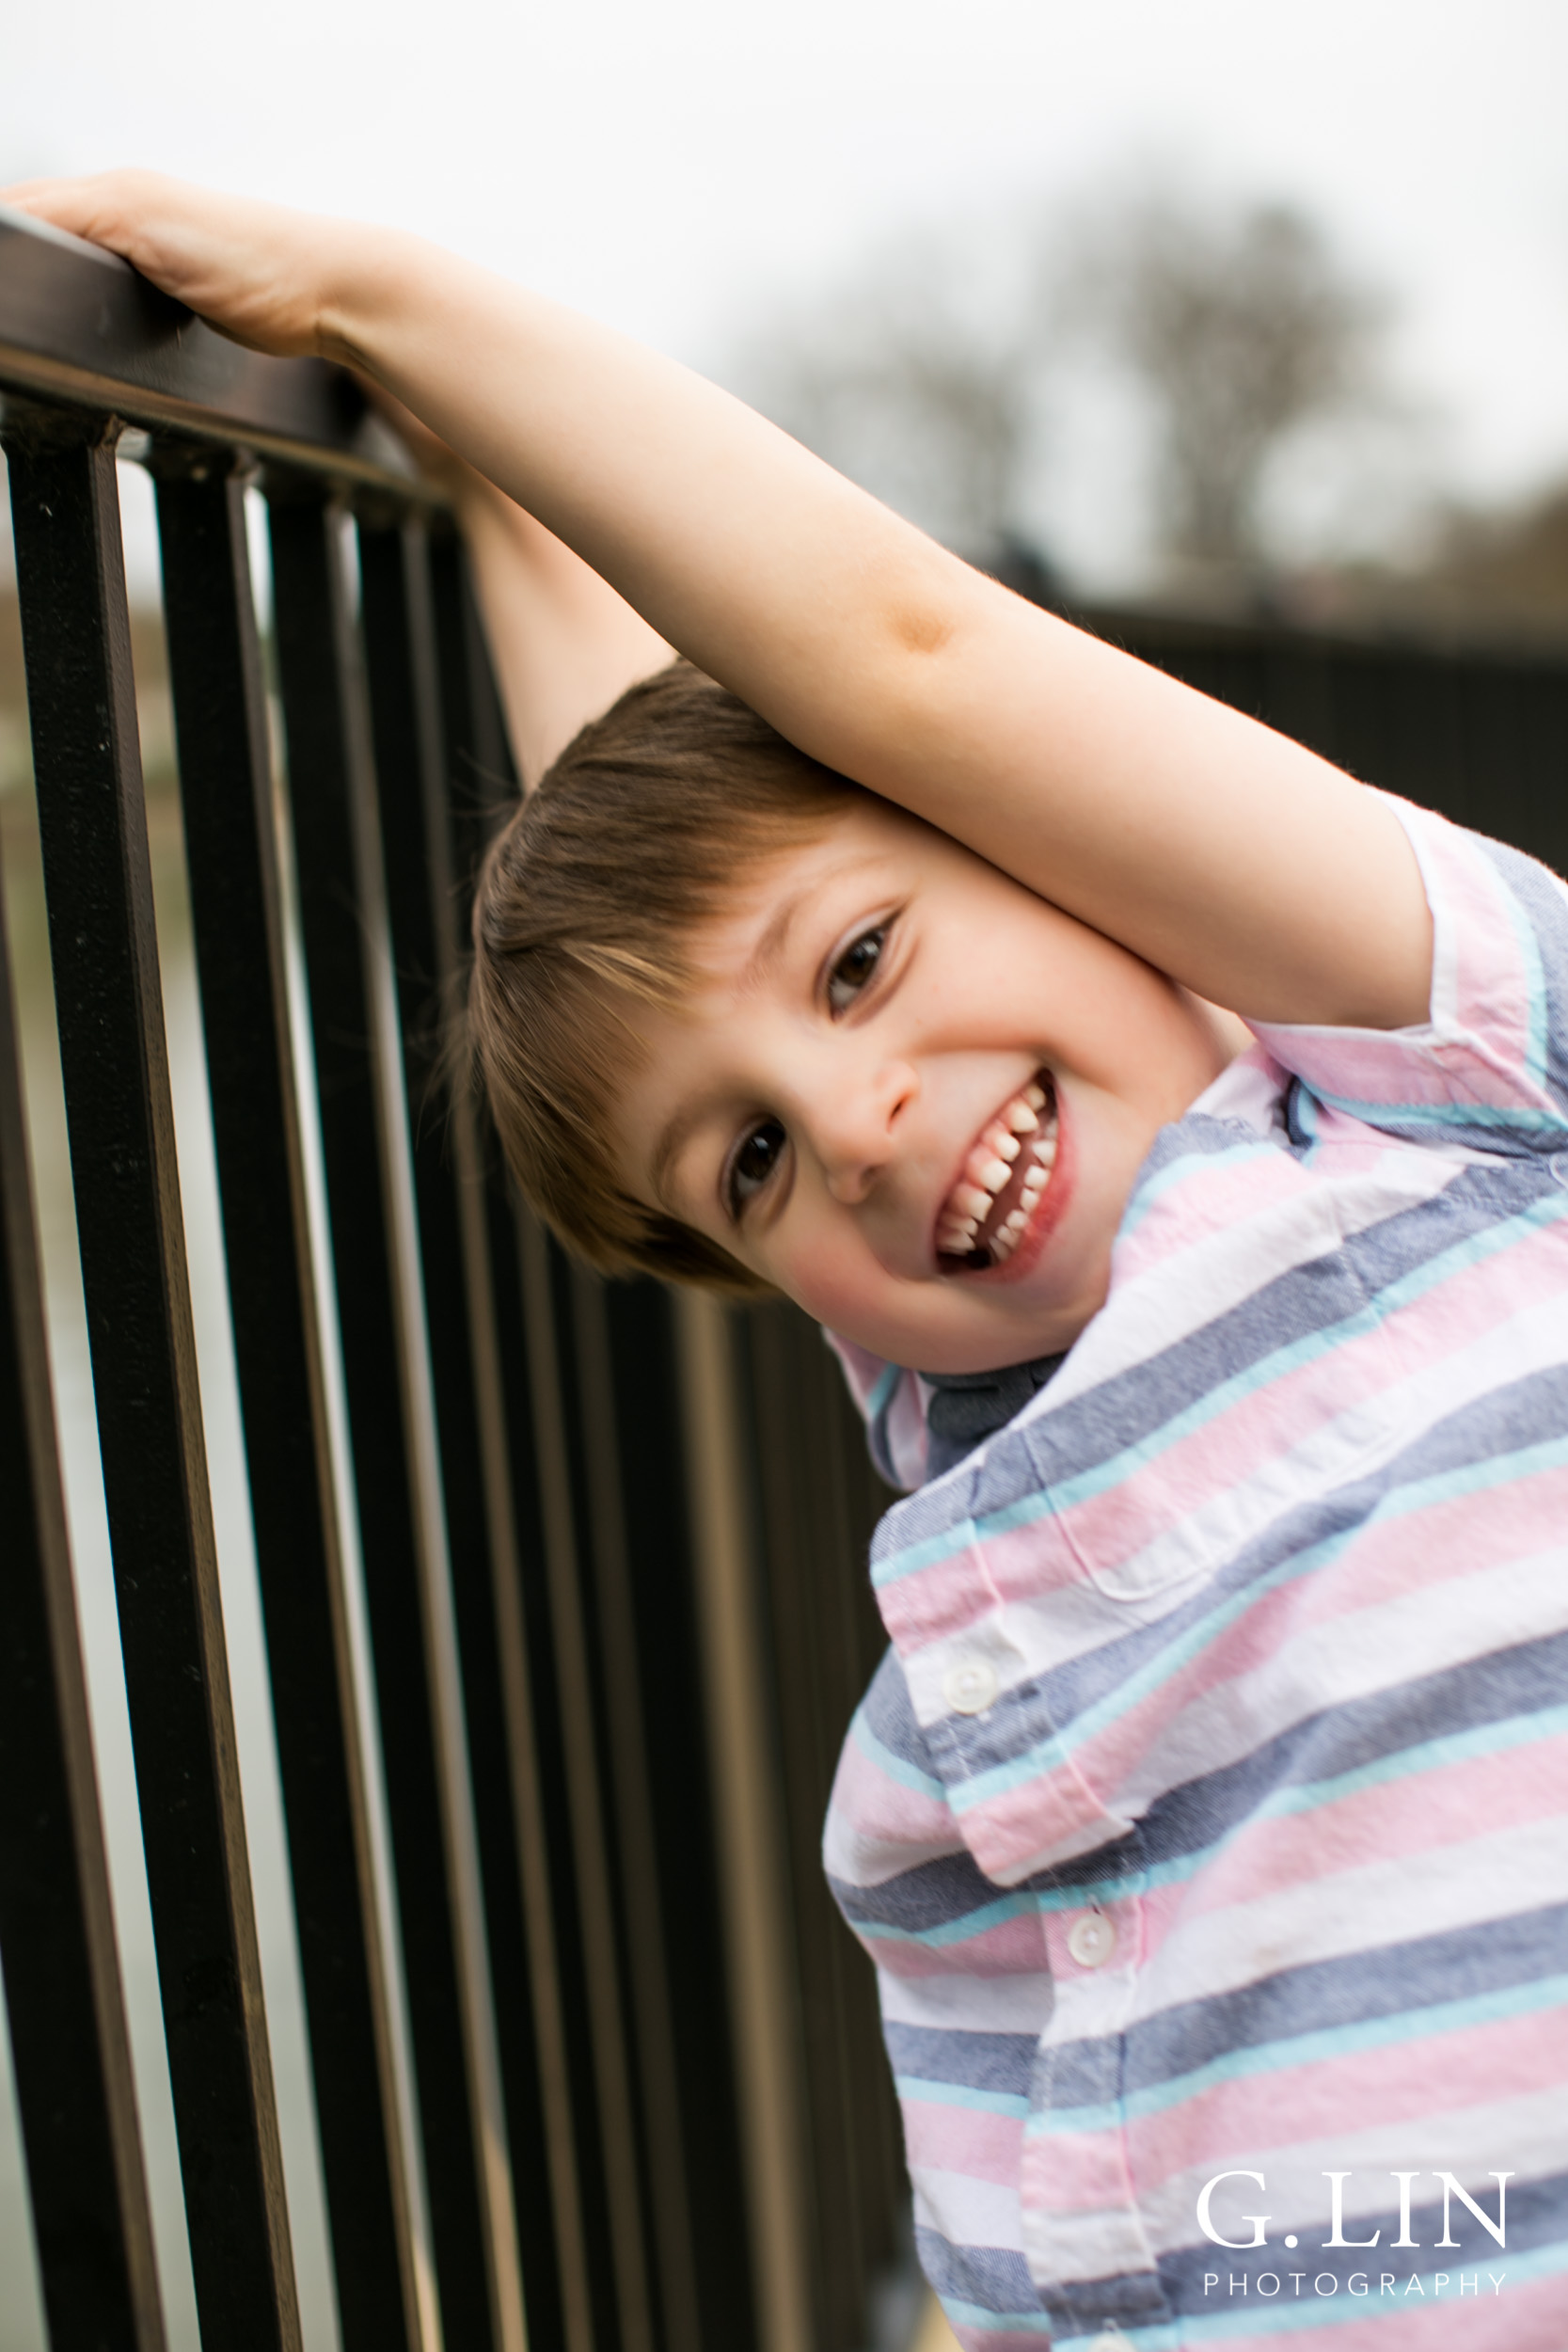 Raleigh Family Photographer | G. Lin Photography | Boy next to fence and smiling